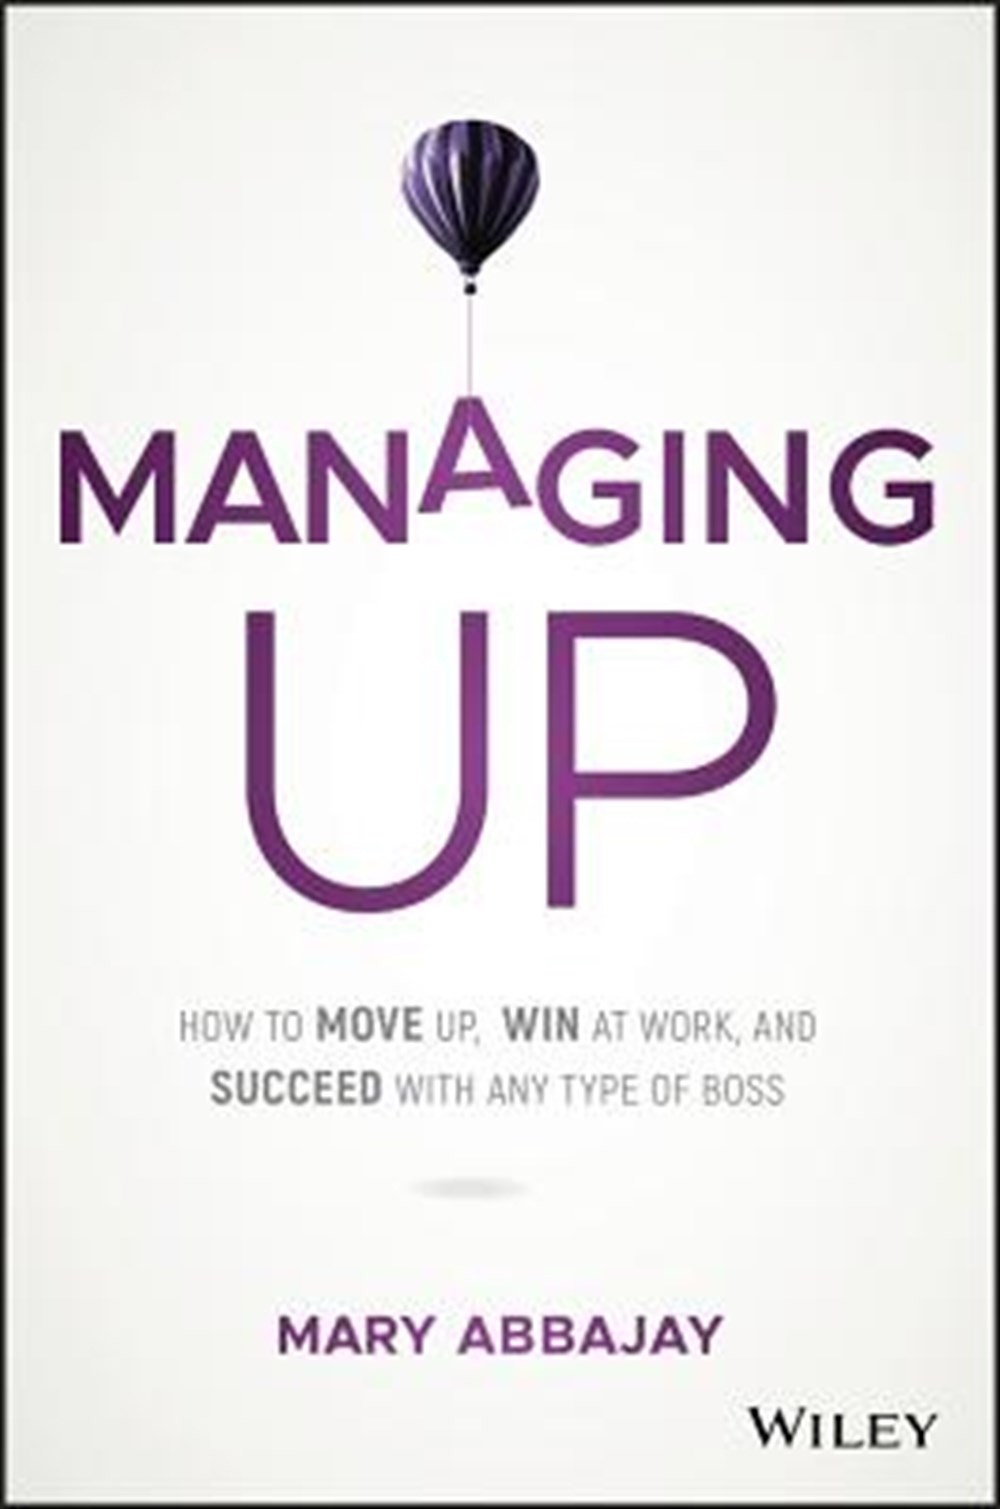 Managing Up How to Move Up, Win at Work, and Succeed with Any Type of Boss